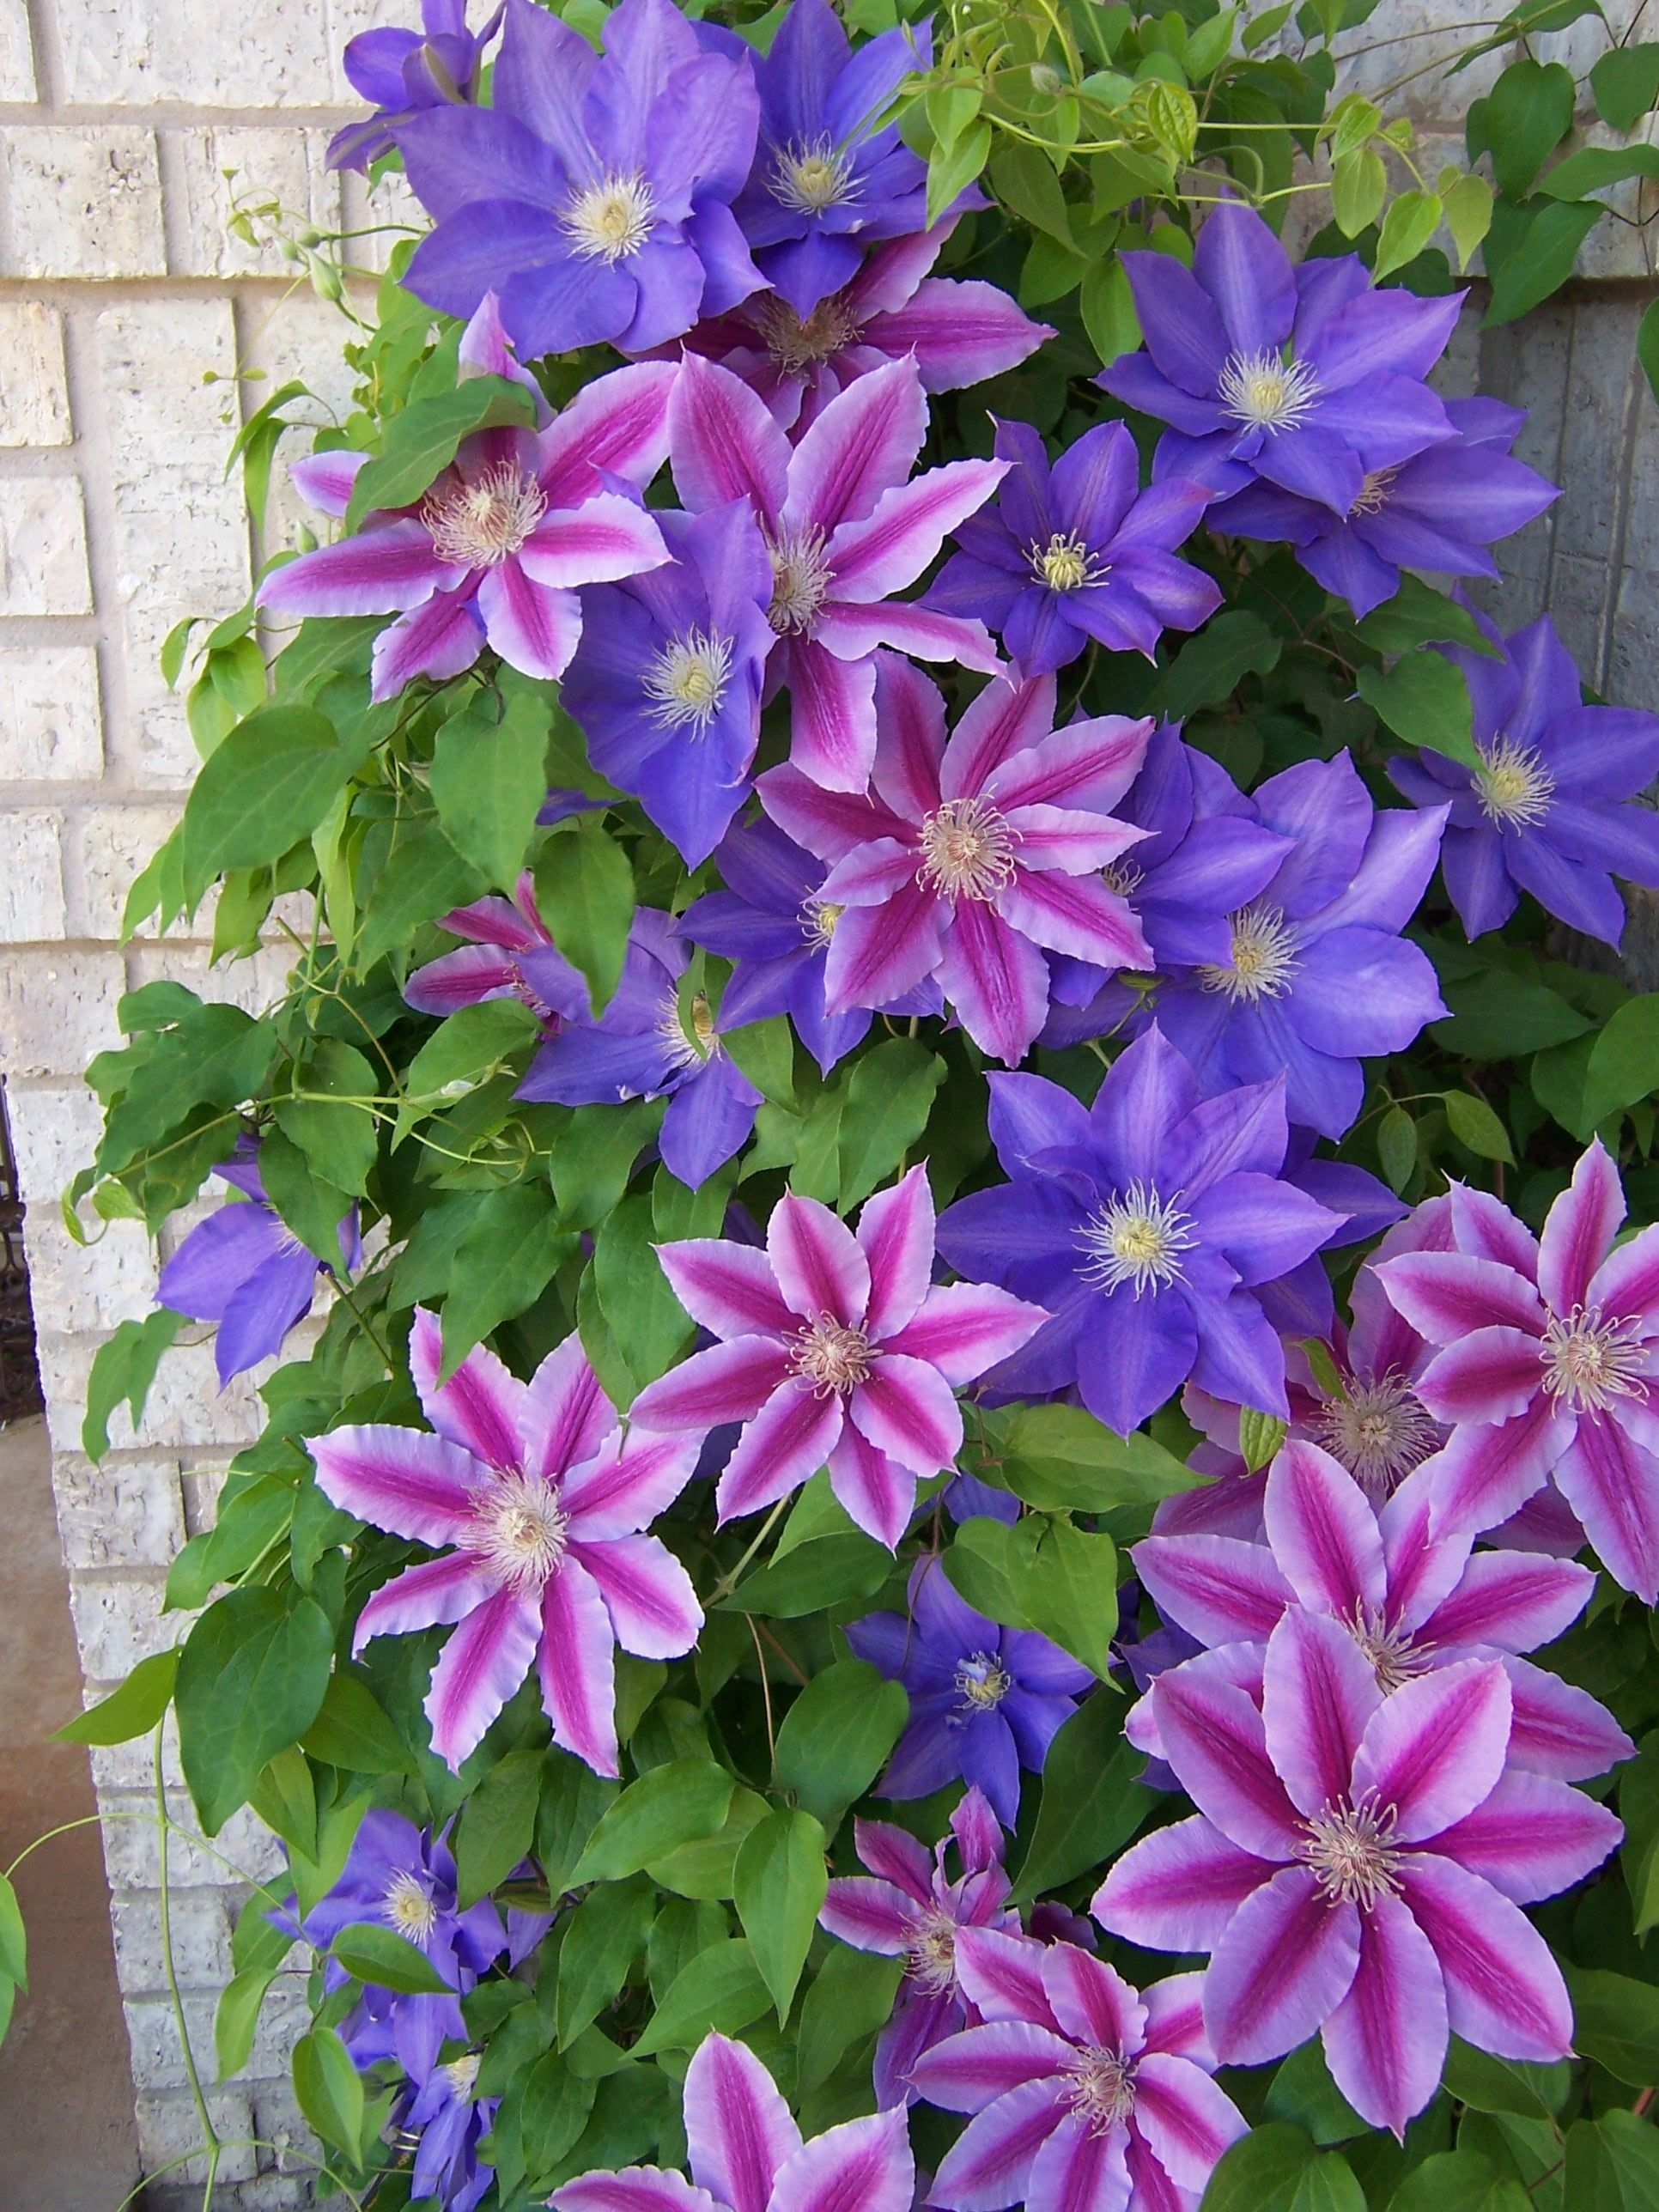 Clematis Pflanzen Jahreszeit Two Gorgeous Clematis Plant Right Next To Each Other To